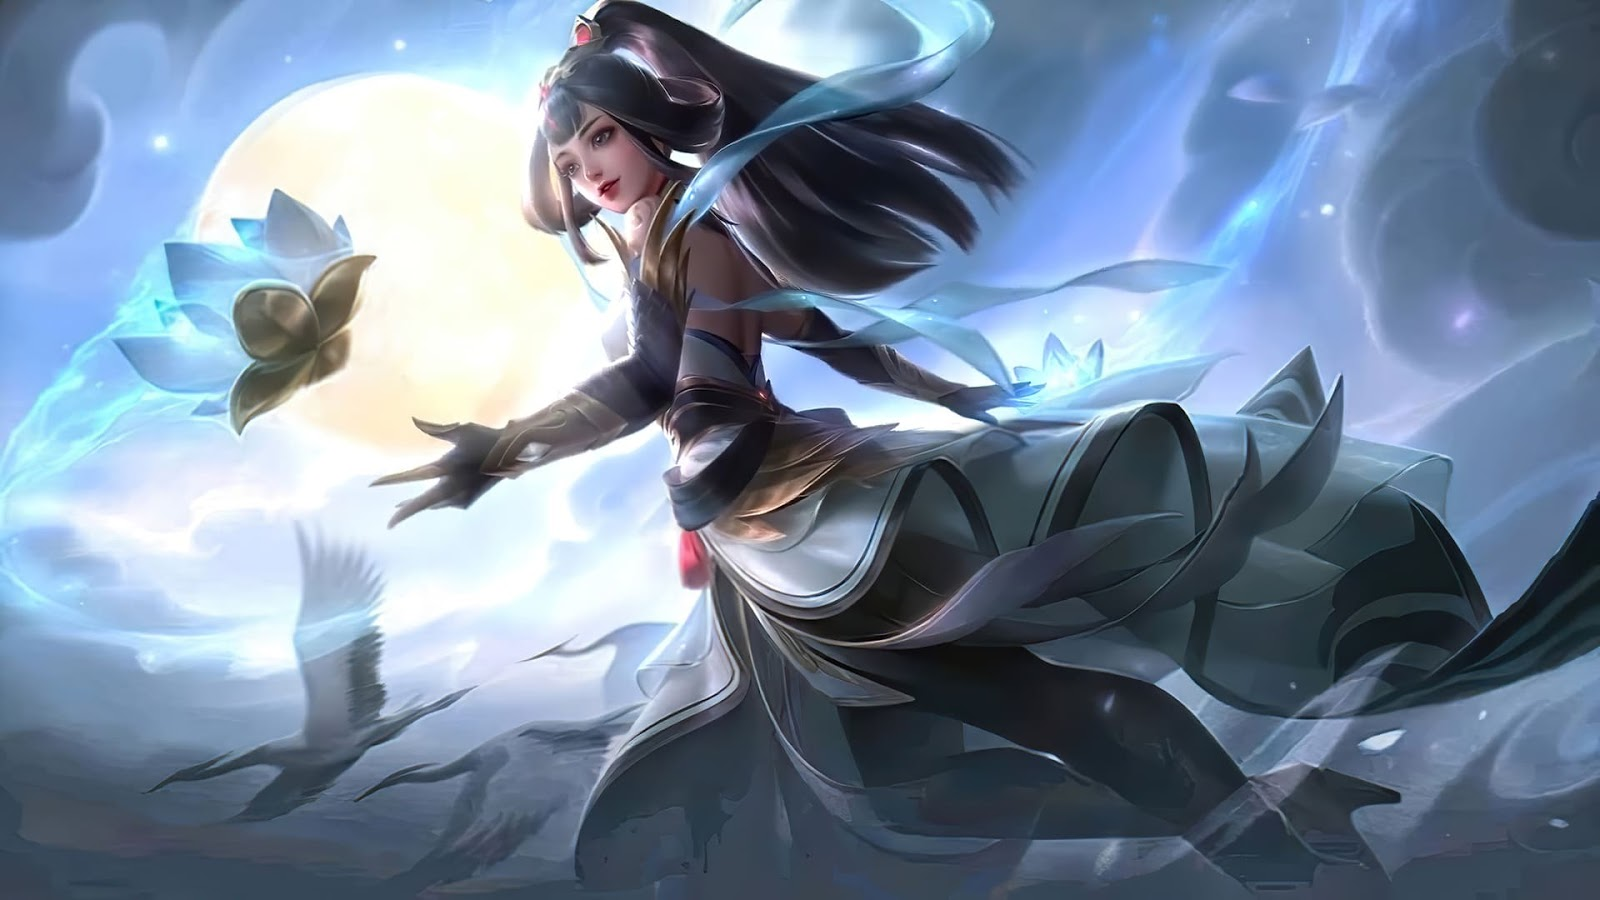 Wallpaper Guinevere Lady Crane Skin Mobile Legends HD for PC